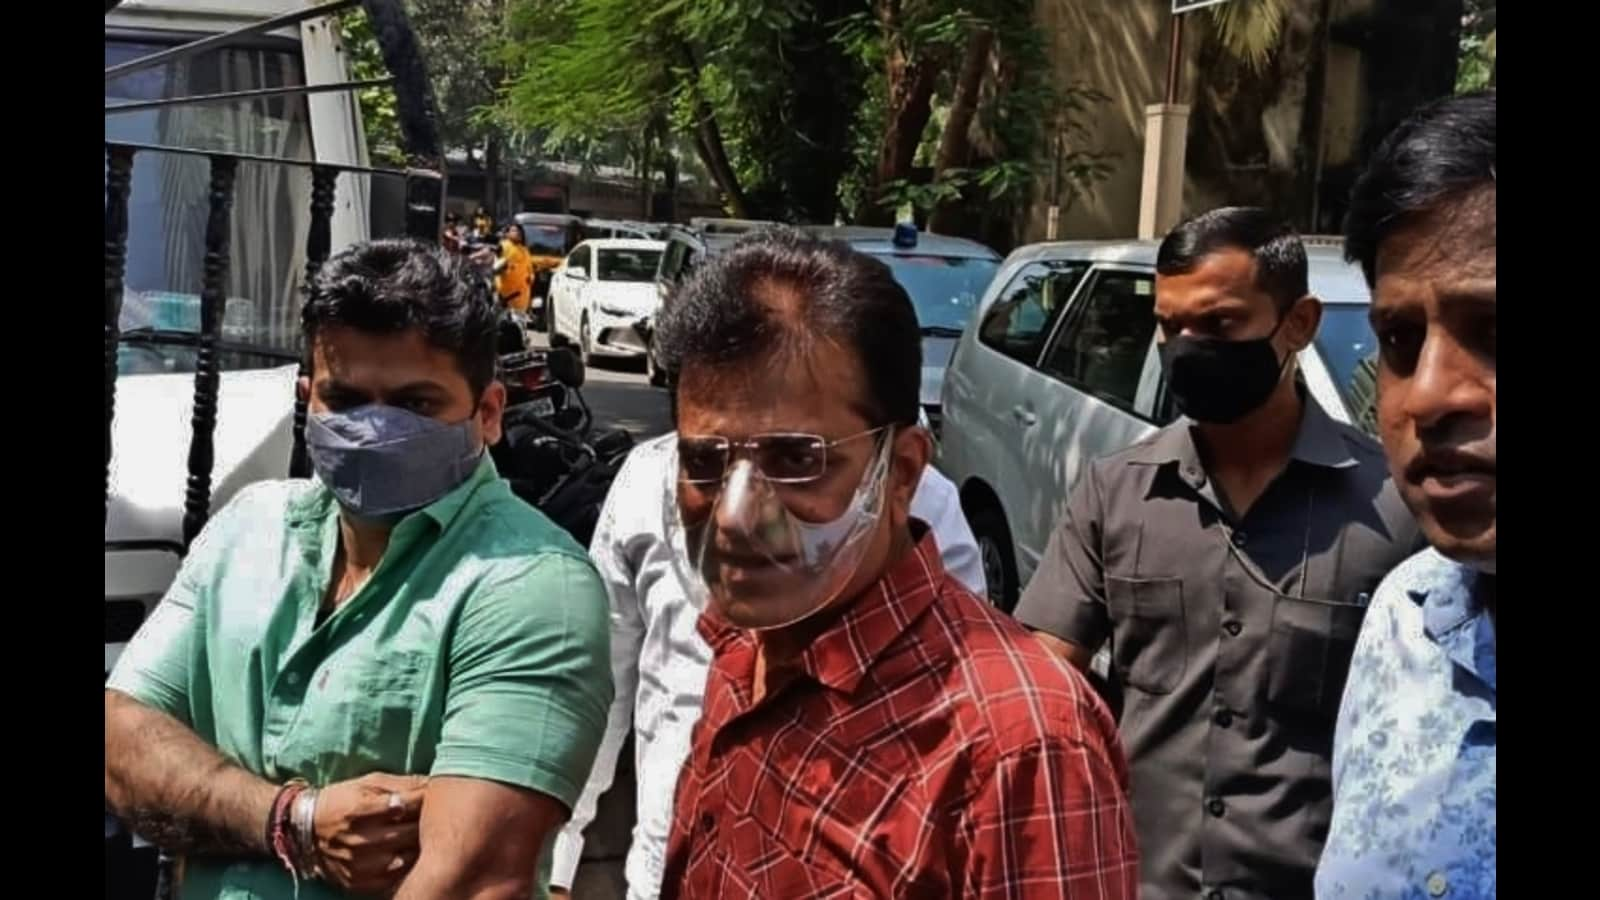 BJP leader Somaiya meets Karmuse in Thane a day after Awhad was arrested and released on bail